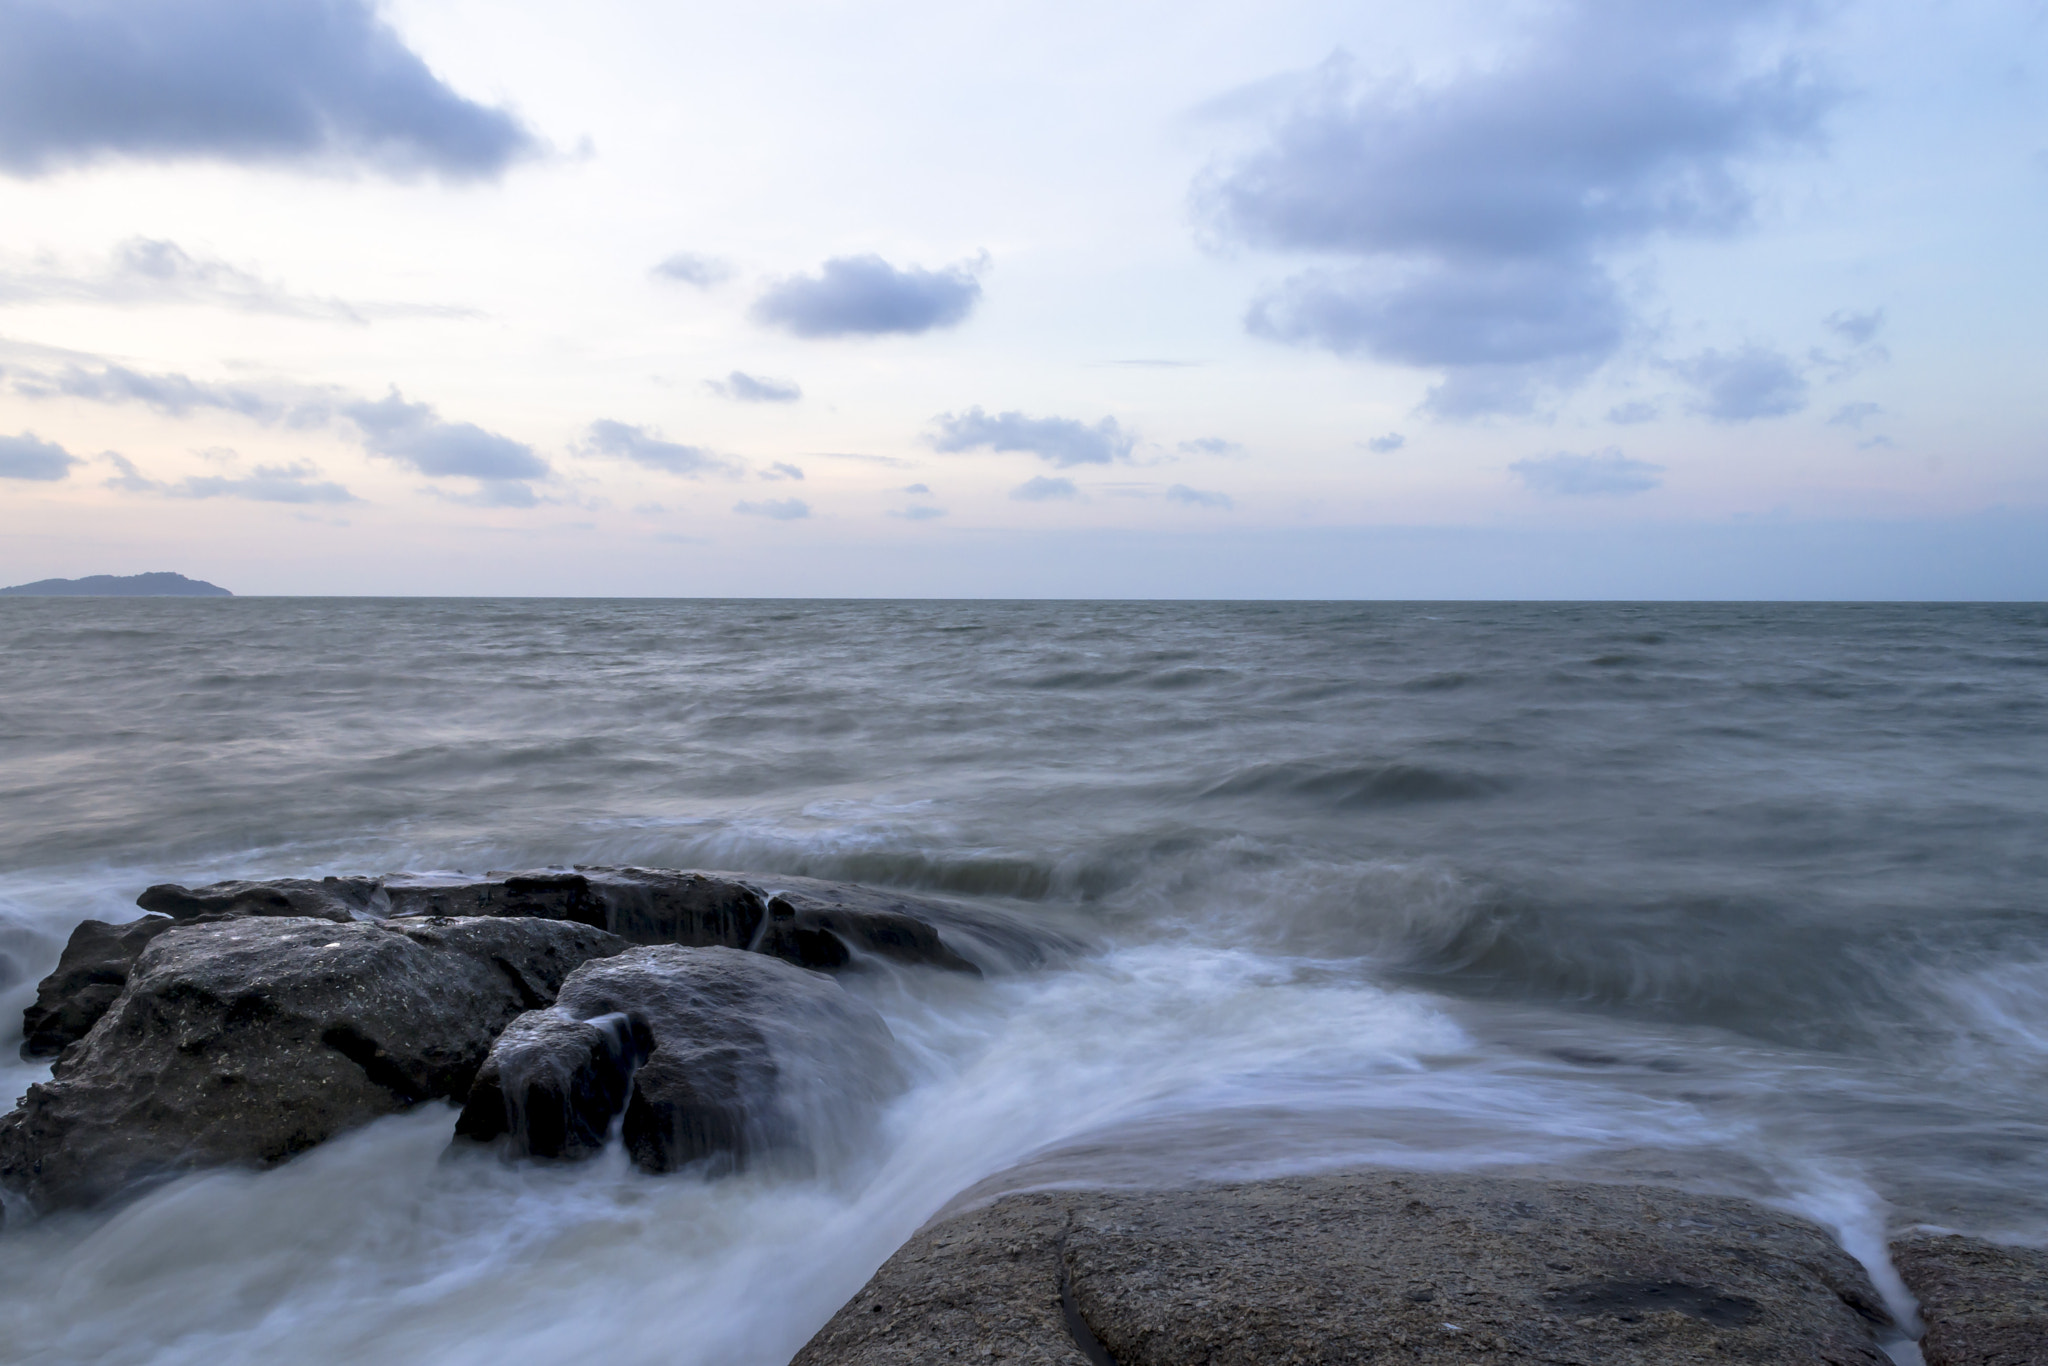 Photograph Rocks and waves by Fotugraphar Quazi on 500px